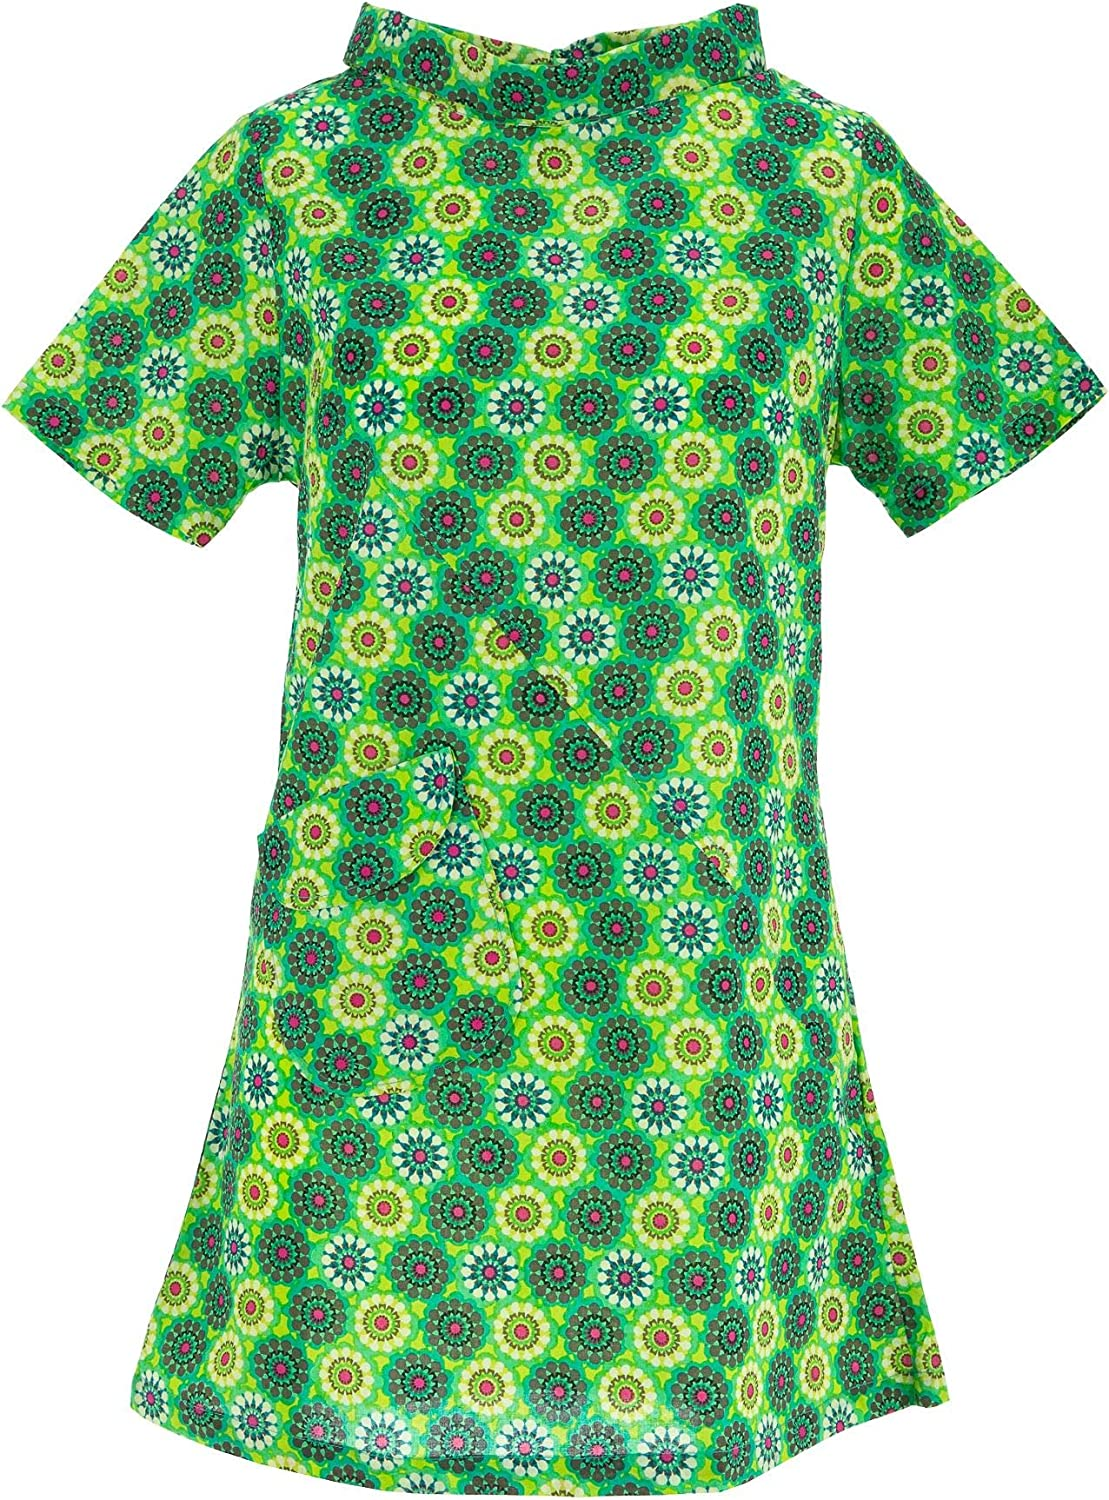 60s Dresses | 1960s Dresses Mod, Mini, Hippie Ministry of Colour Sixties Shift Dress £29.90 AT vintagedancer.com